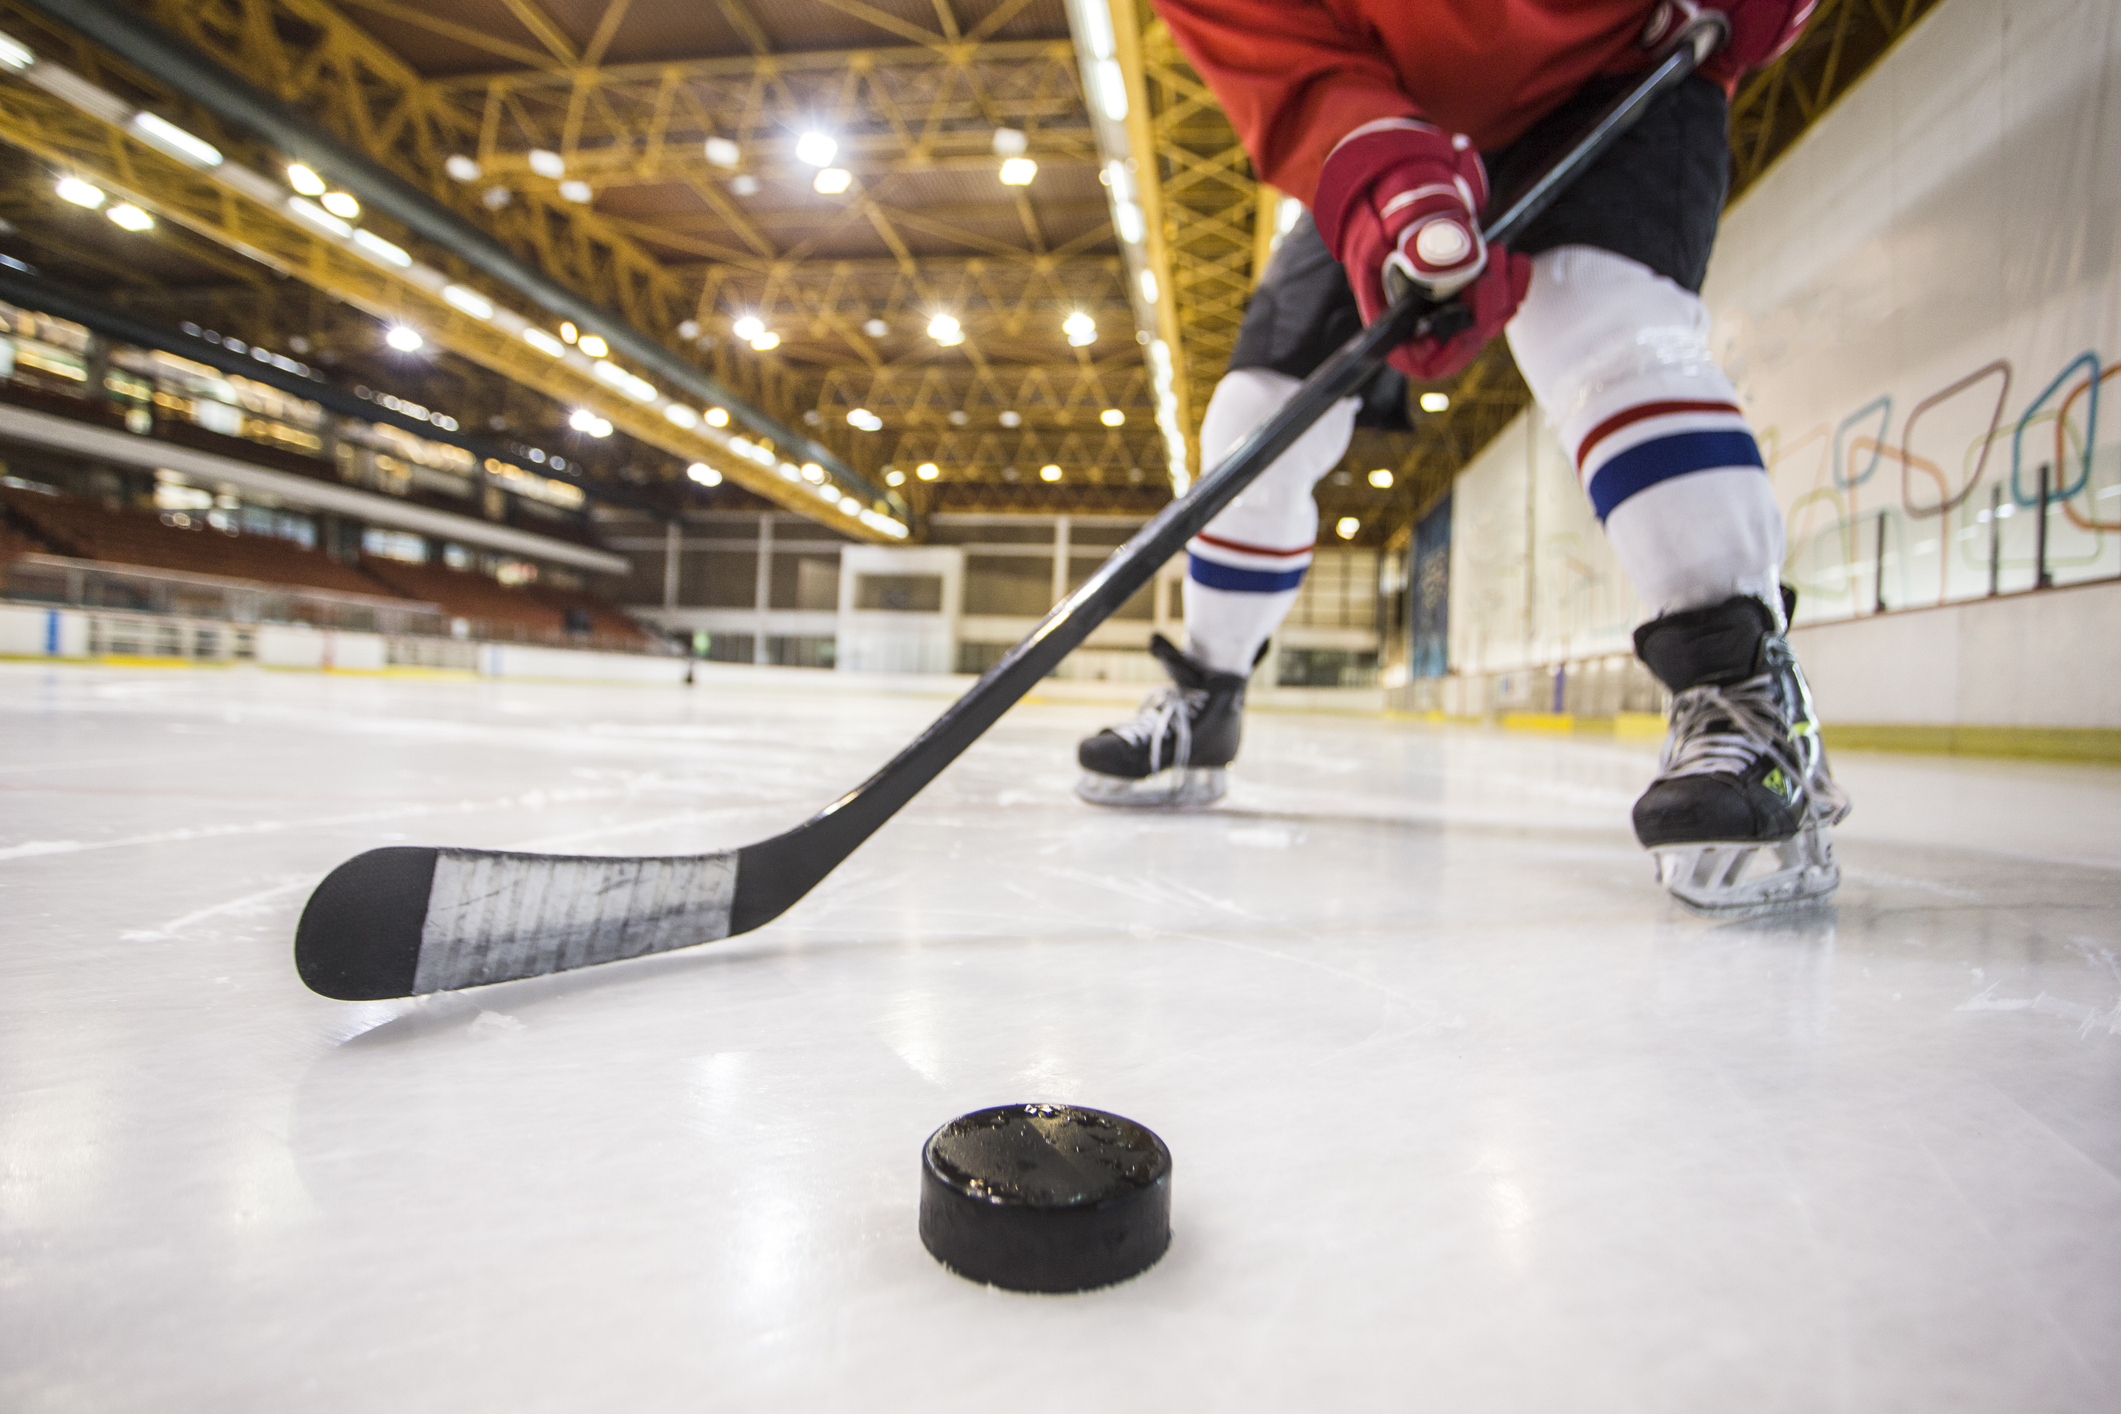 Coronavirus outbreaks lead this state to close indoor ice rinks